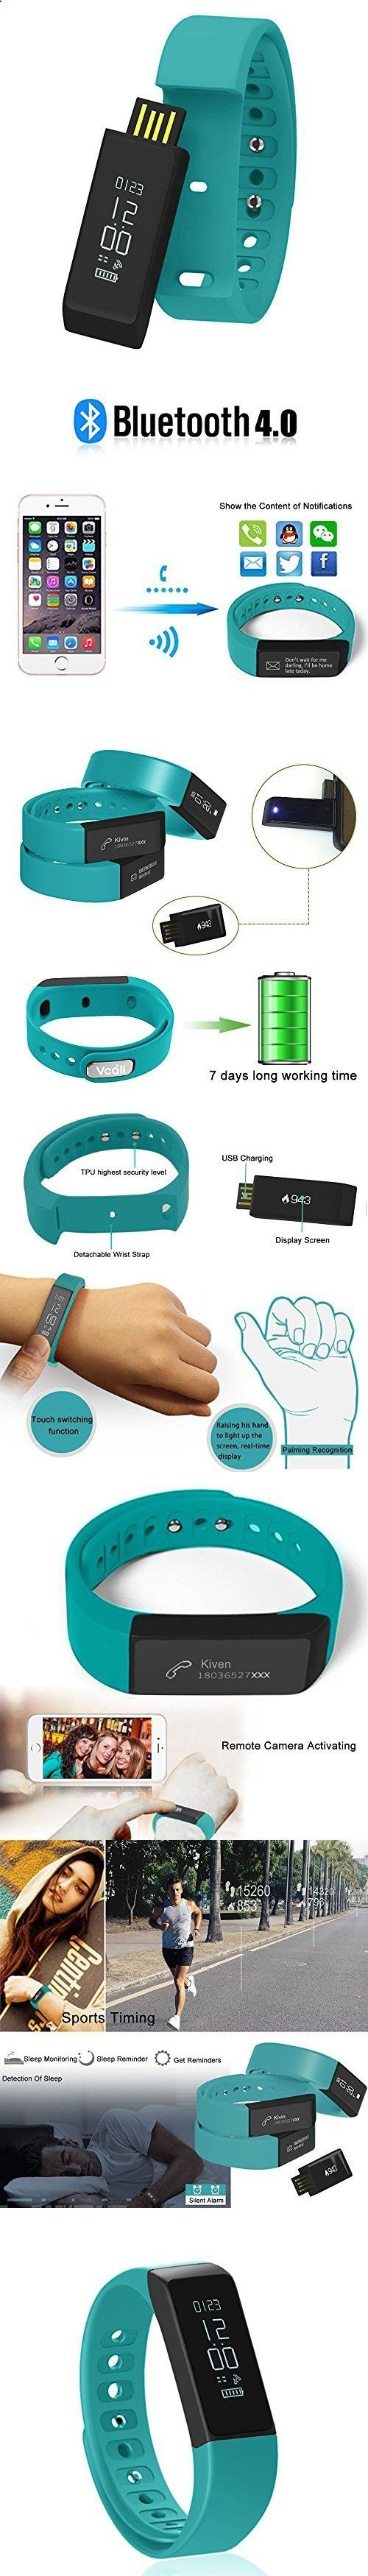 Activity Bracelets Fitness - Activity Bracelets Fitness - Fitness Tracker Pedometer Vcall I5 PLUS Waterproof Bluetooth Activity Tracker Sports Bracelet Smart Band Wristband Fitness Watch with Touch Screen Health Sleep Monitor for iPhone Android Phones - The benefits of wearing these smart bracelets are not only in your comfort, but also in that they are able to control all your physical progress - The benefits of wearing these smart bracelets are not only in your comfort, but also in t...